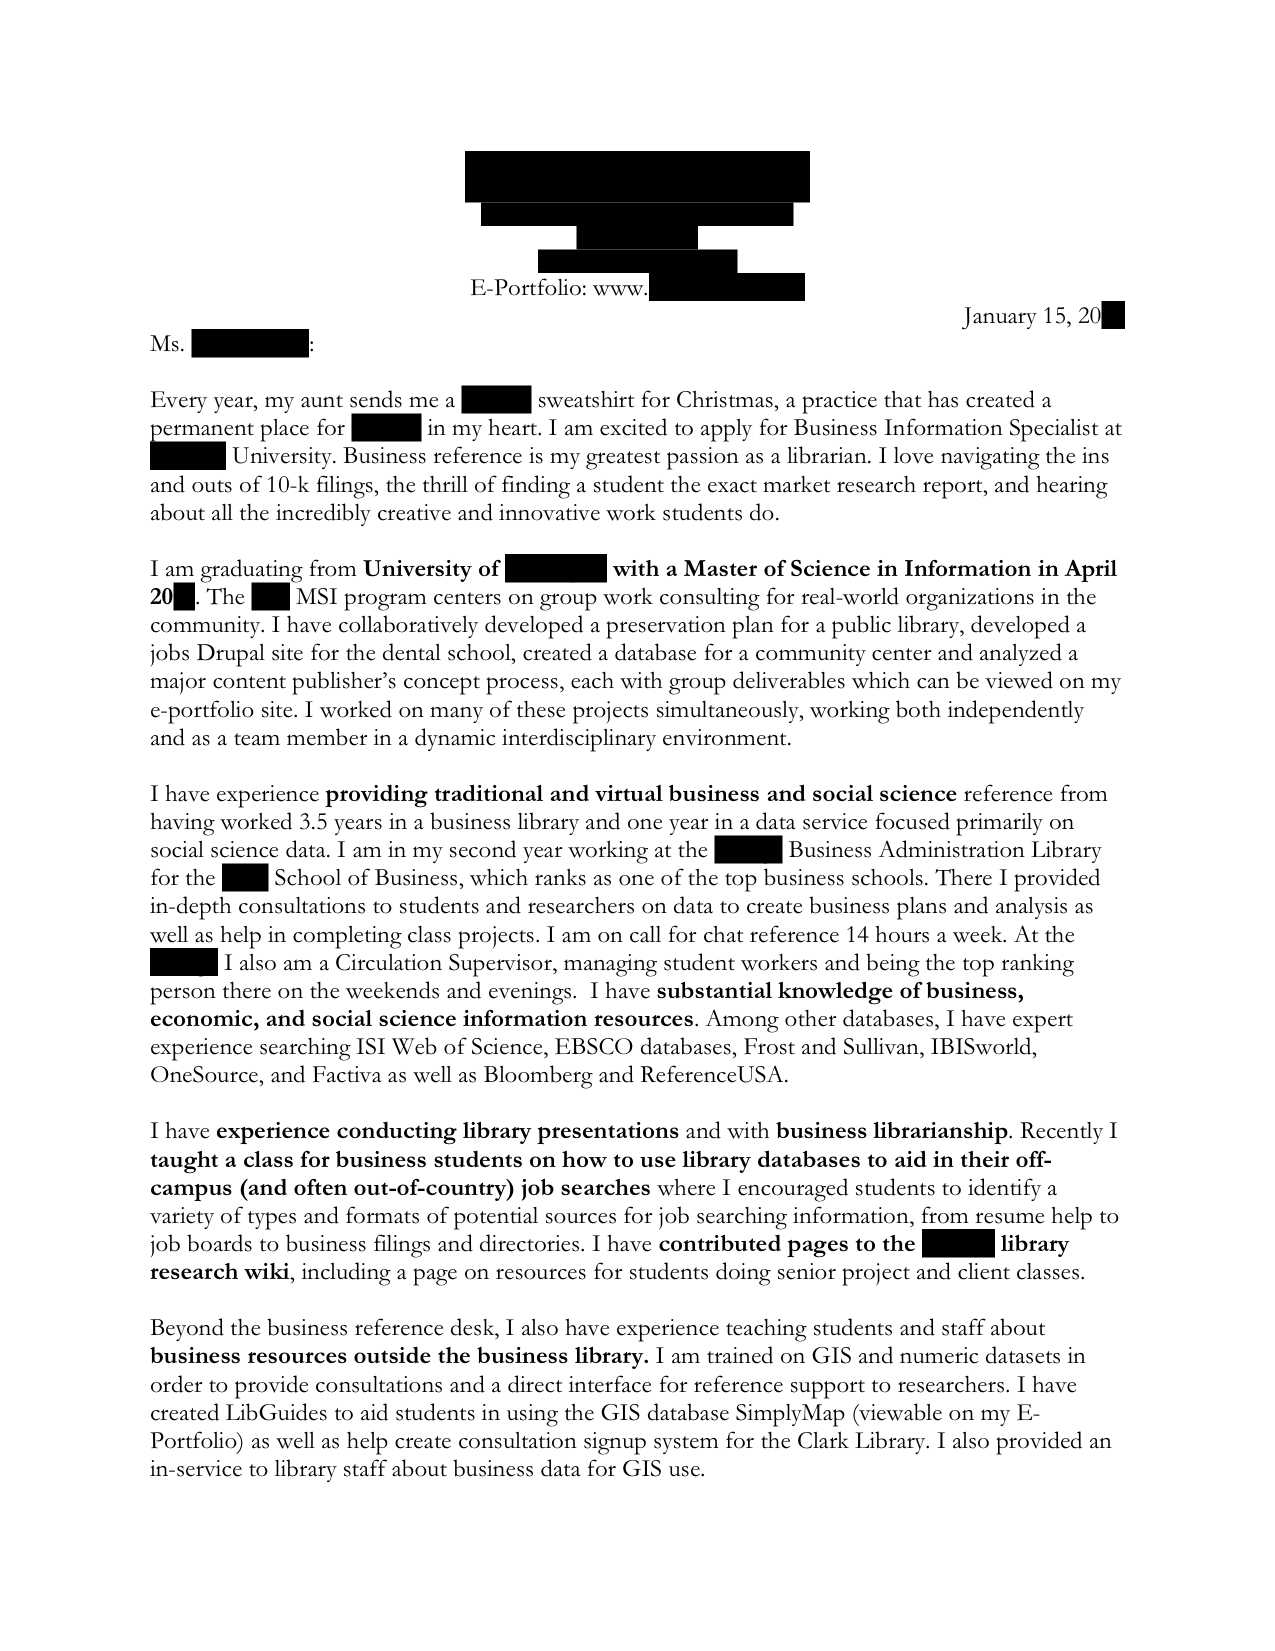 Reading Specialist Cover Letter Template - Procurement specialist cover letter